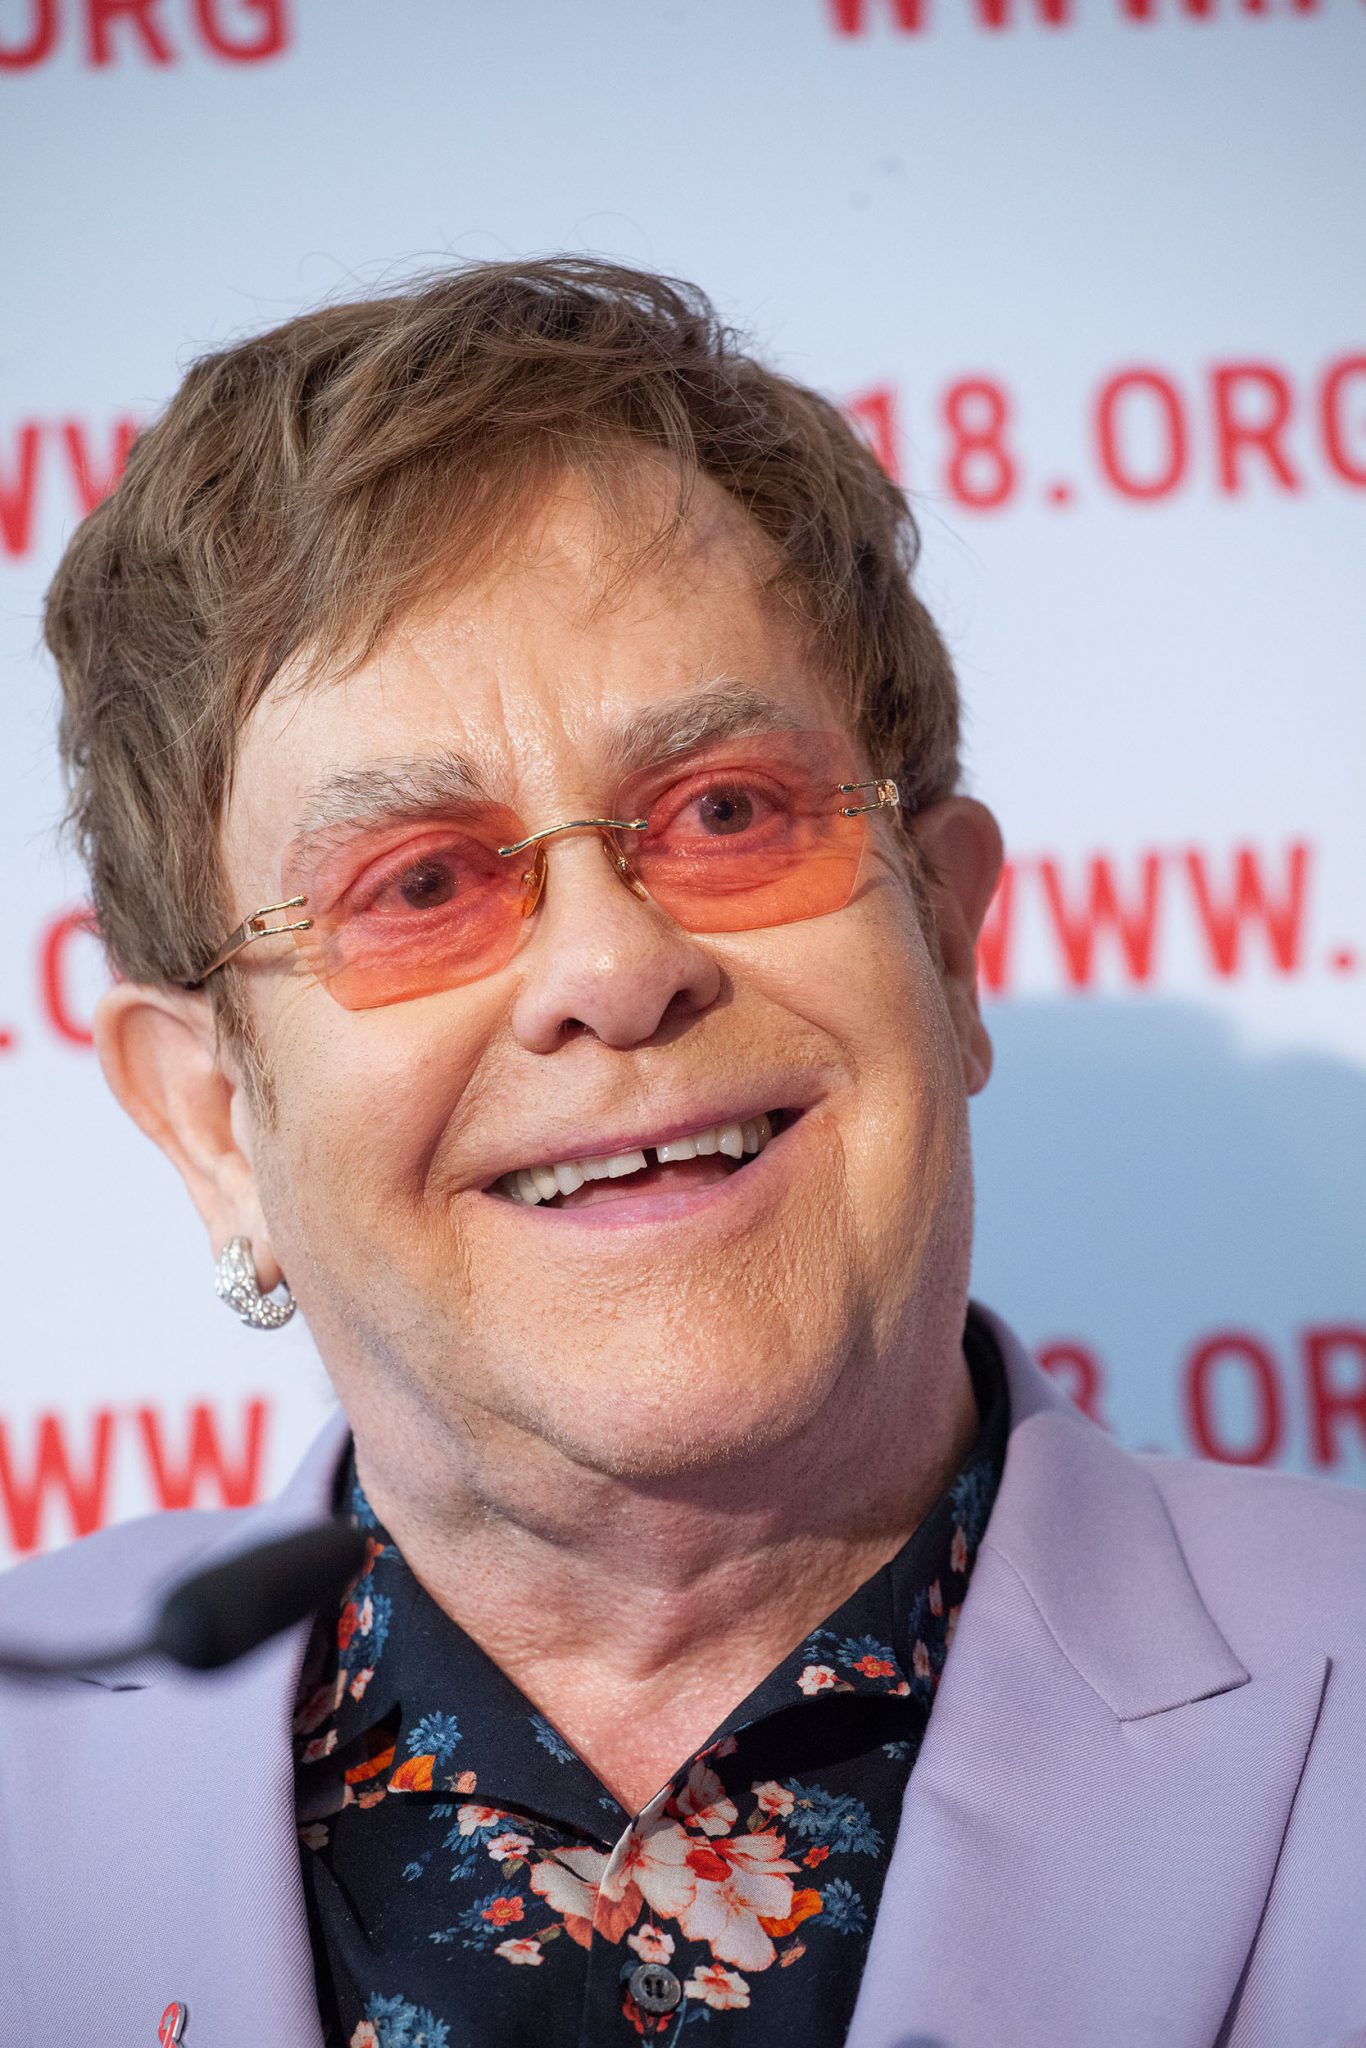 The Elton John Foundation praised the Network's activities